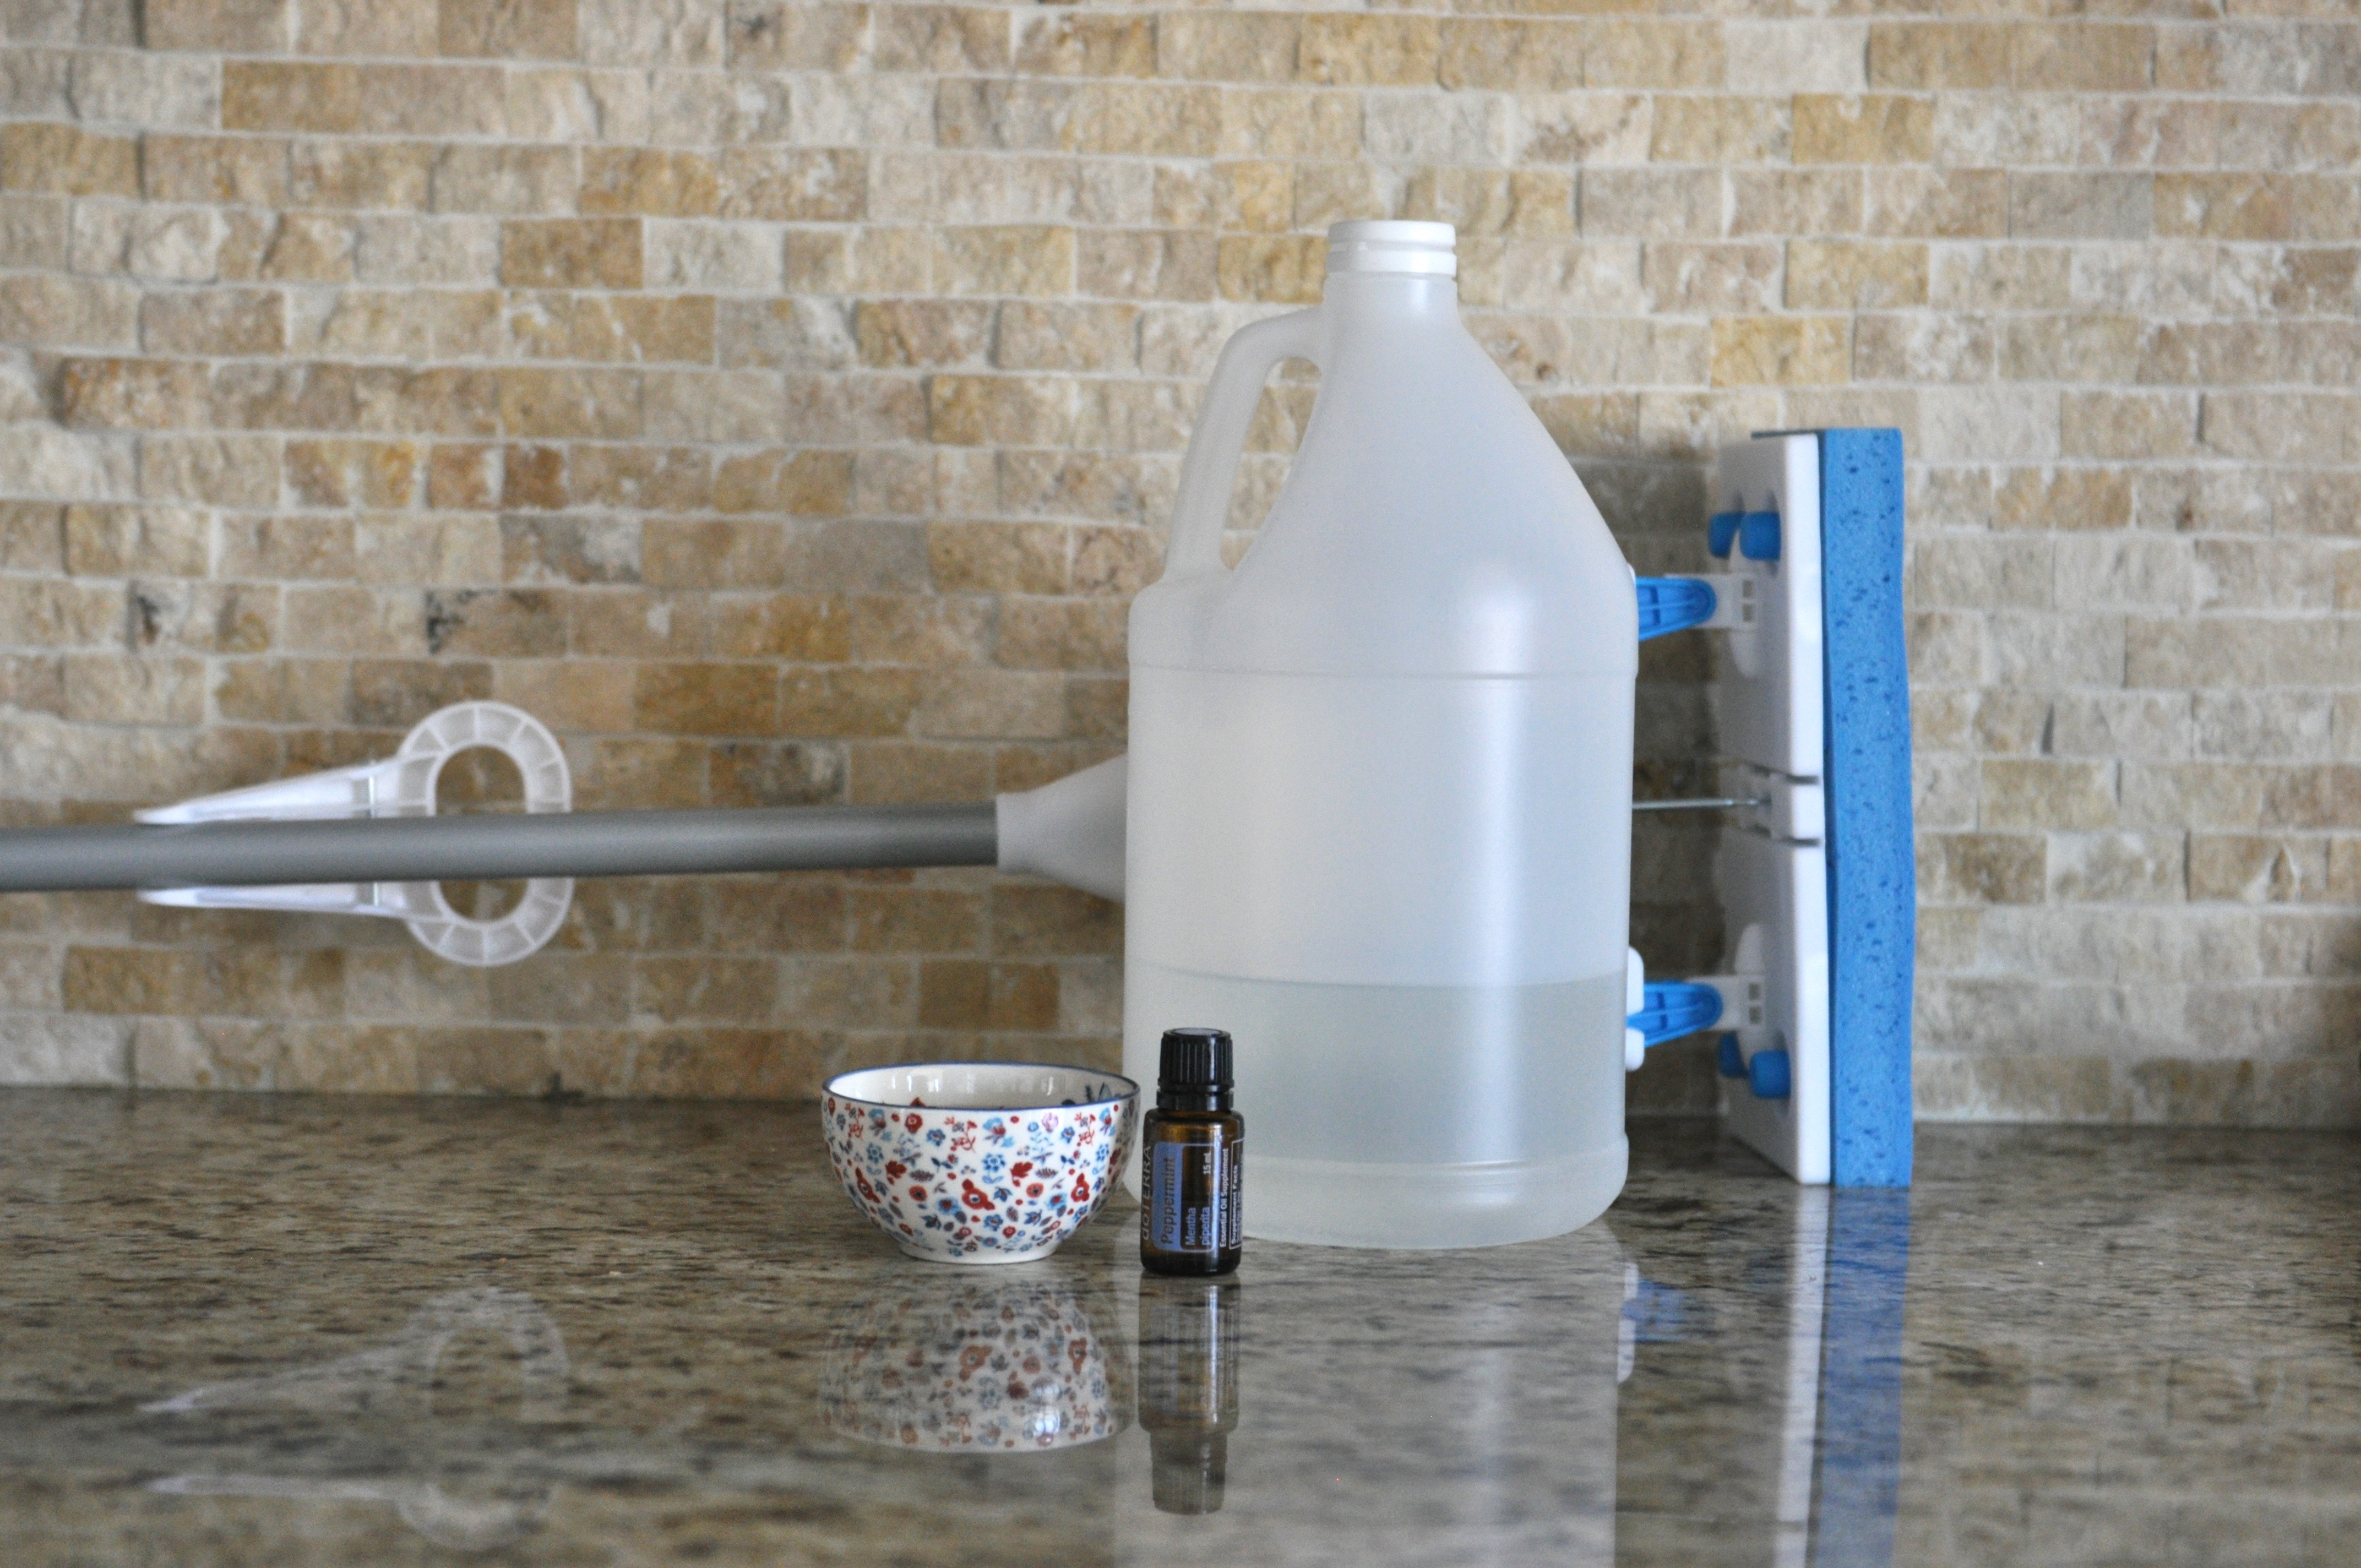 Cleaning solutions for tile floors